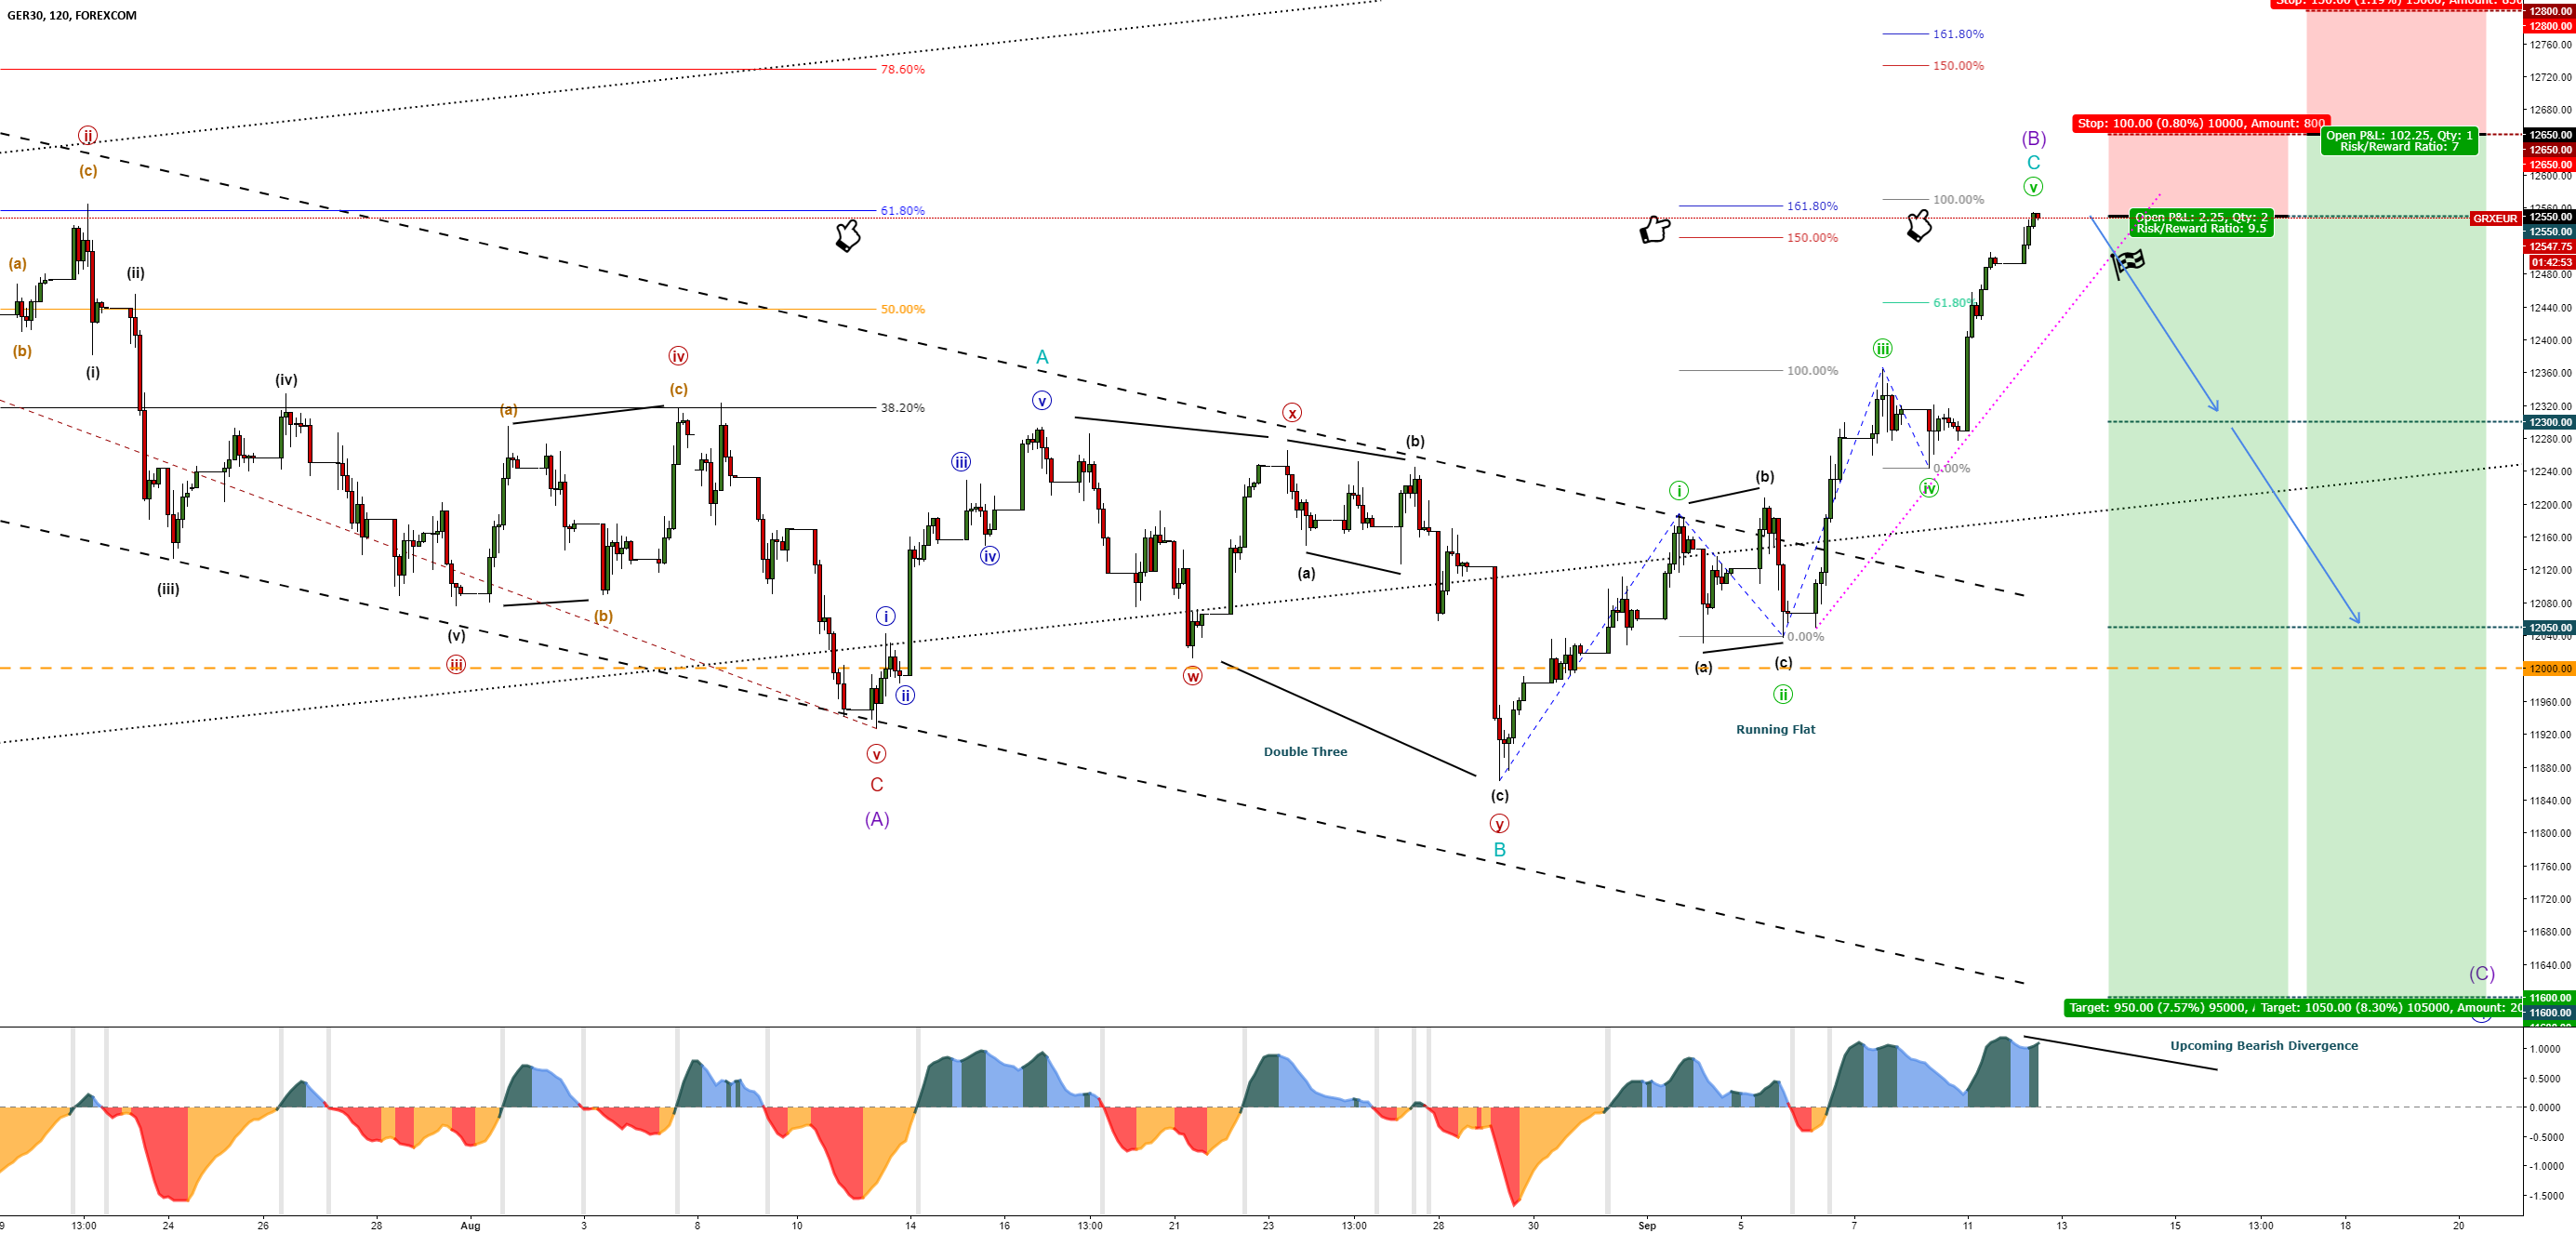 DAX30-GER30 – Bearish Intermediate (C)